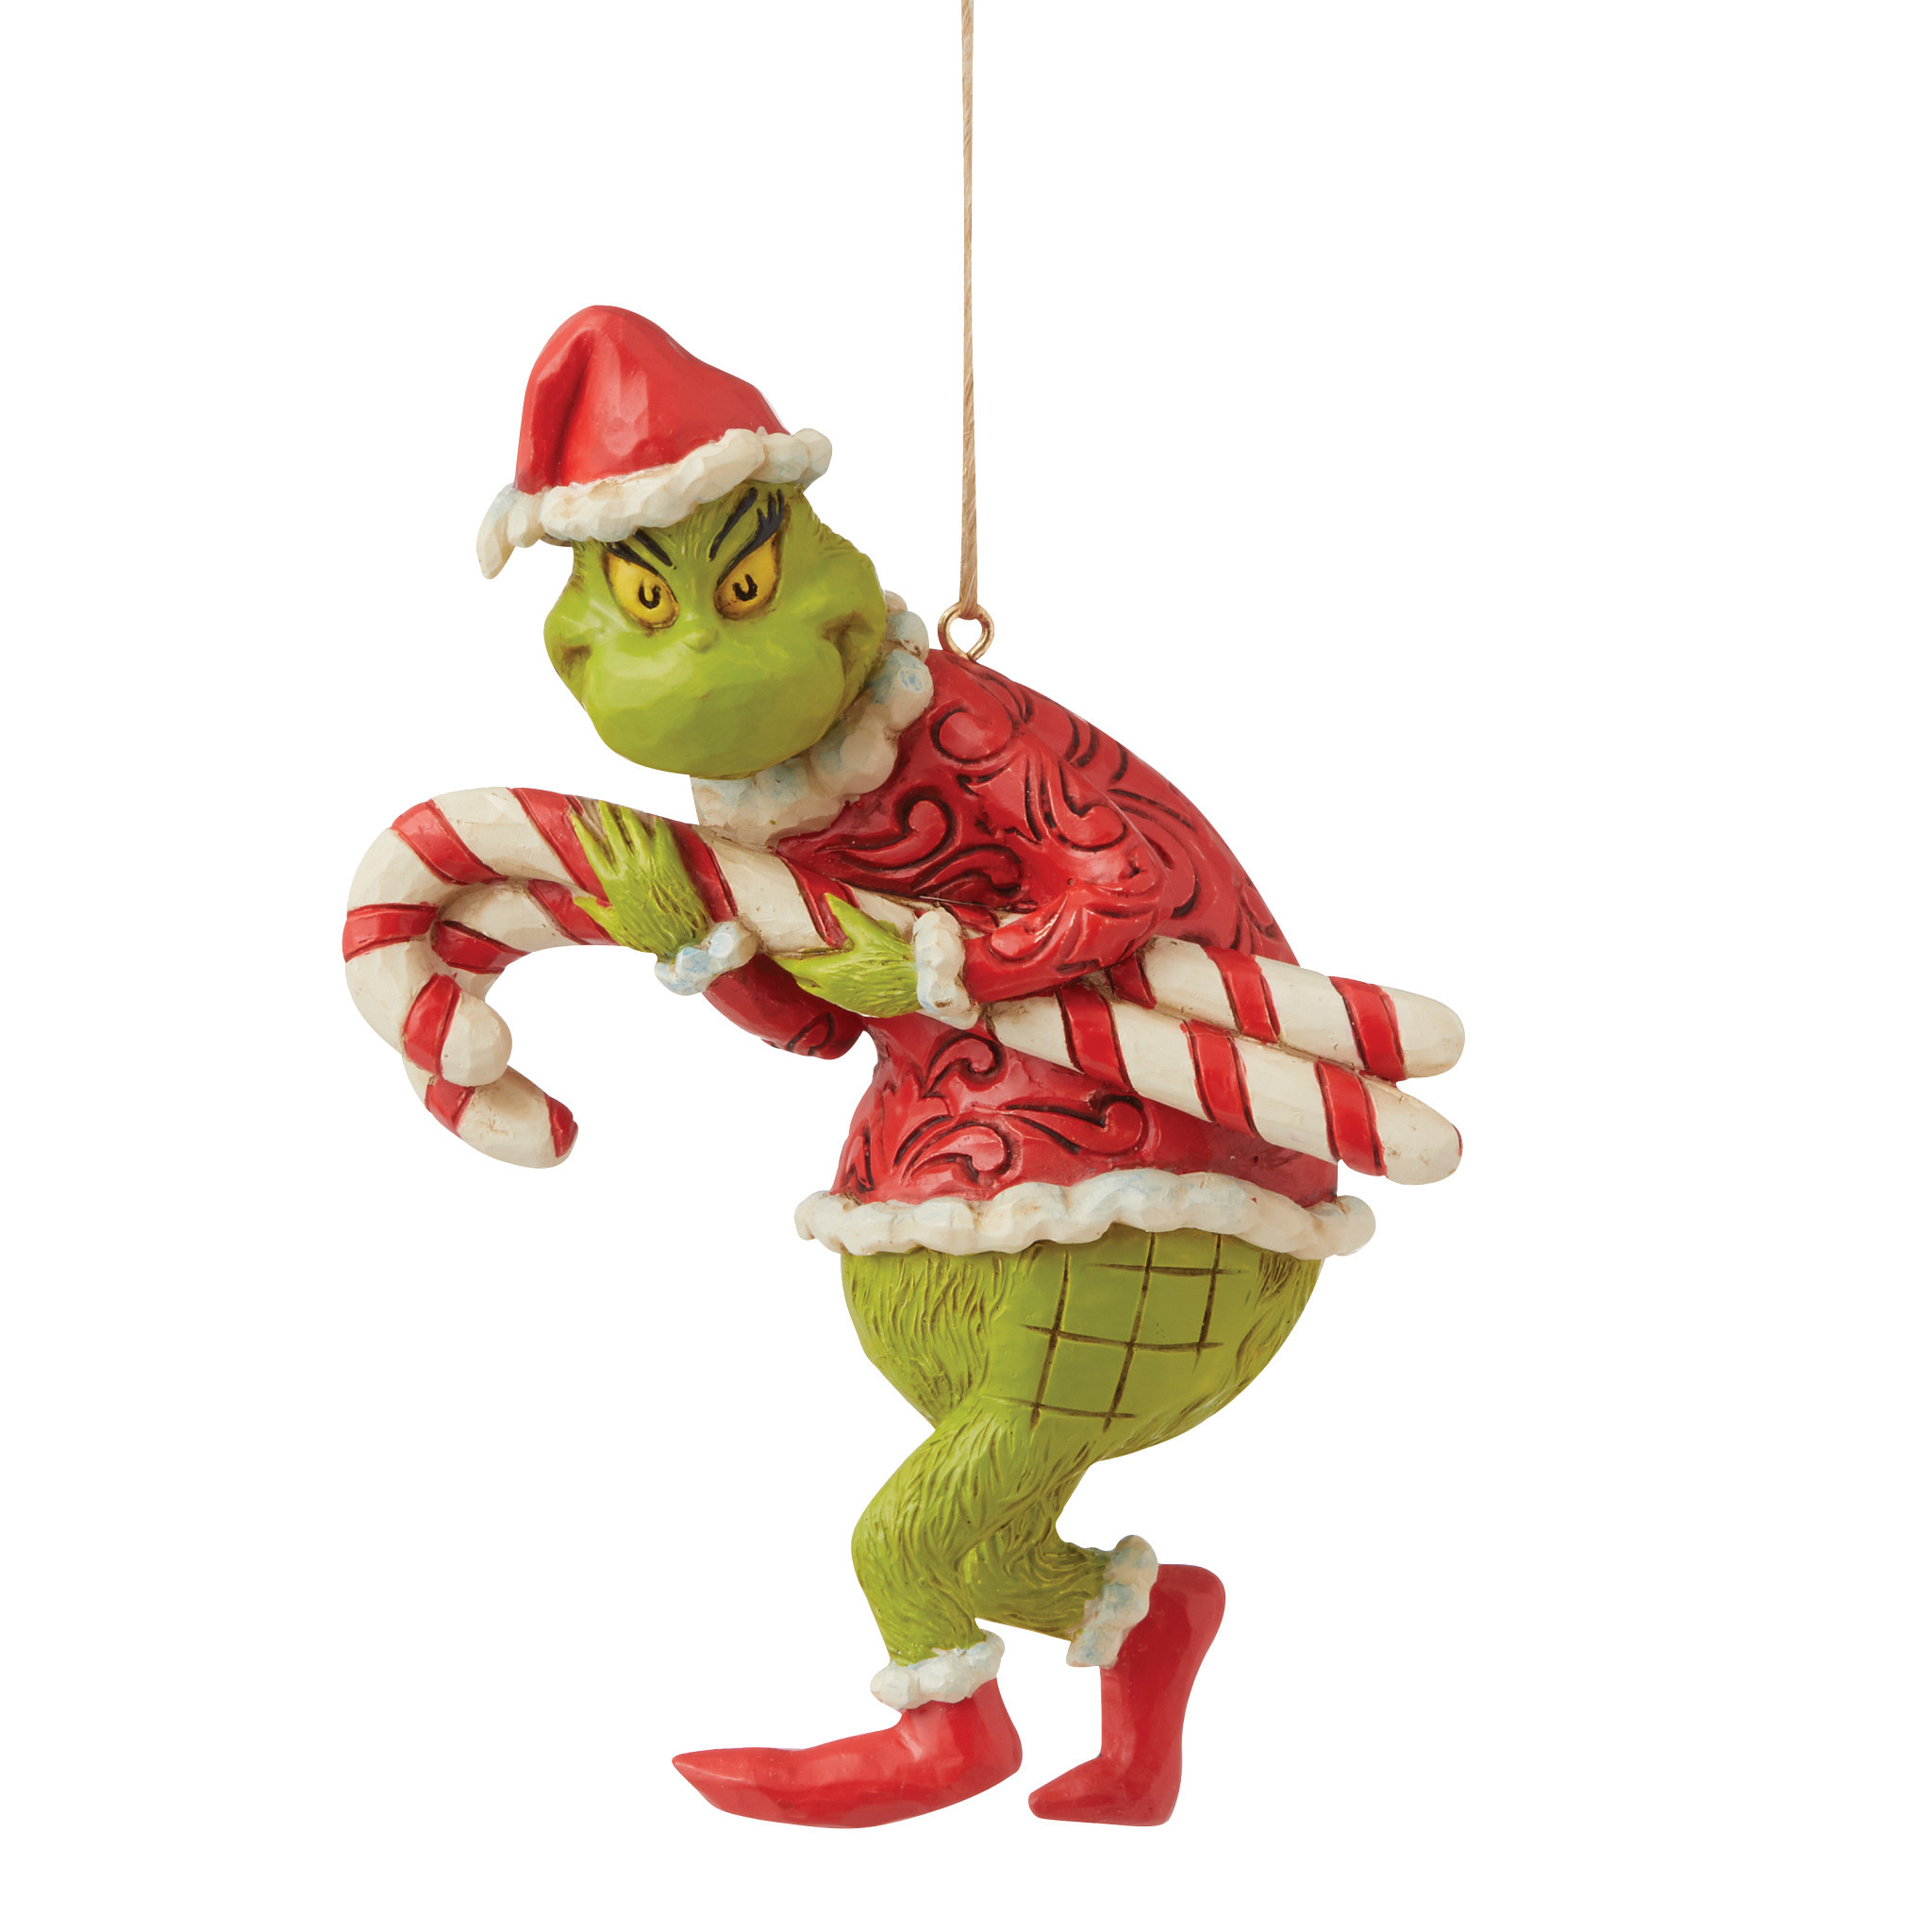 Jim Shore - Christmas Accessories 'Grinch Stealing Candy Canes (Hanging Ornament) N' 2021